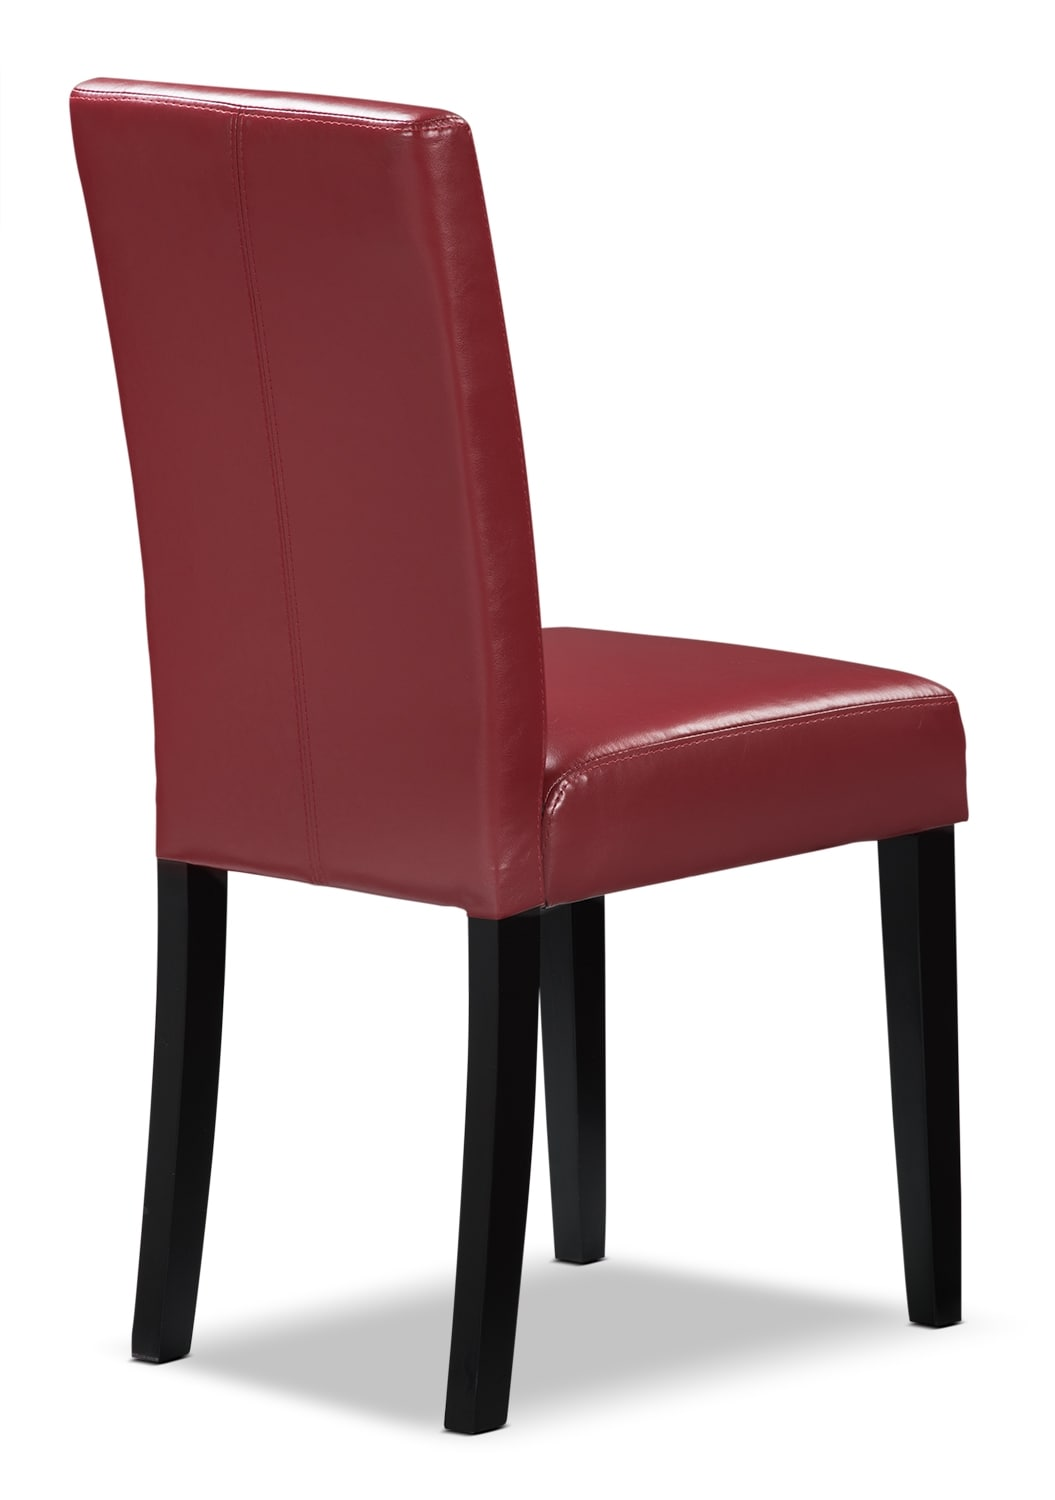 Dining Accent Chairs Leather Dining Room Kitchen Chairs  : 399862 from amlibgroup.com size 1055 x 1500 jpeg 71kB